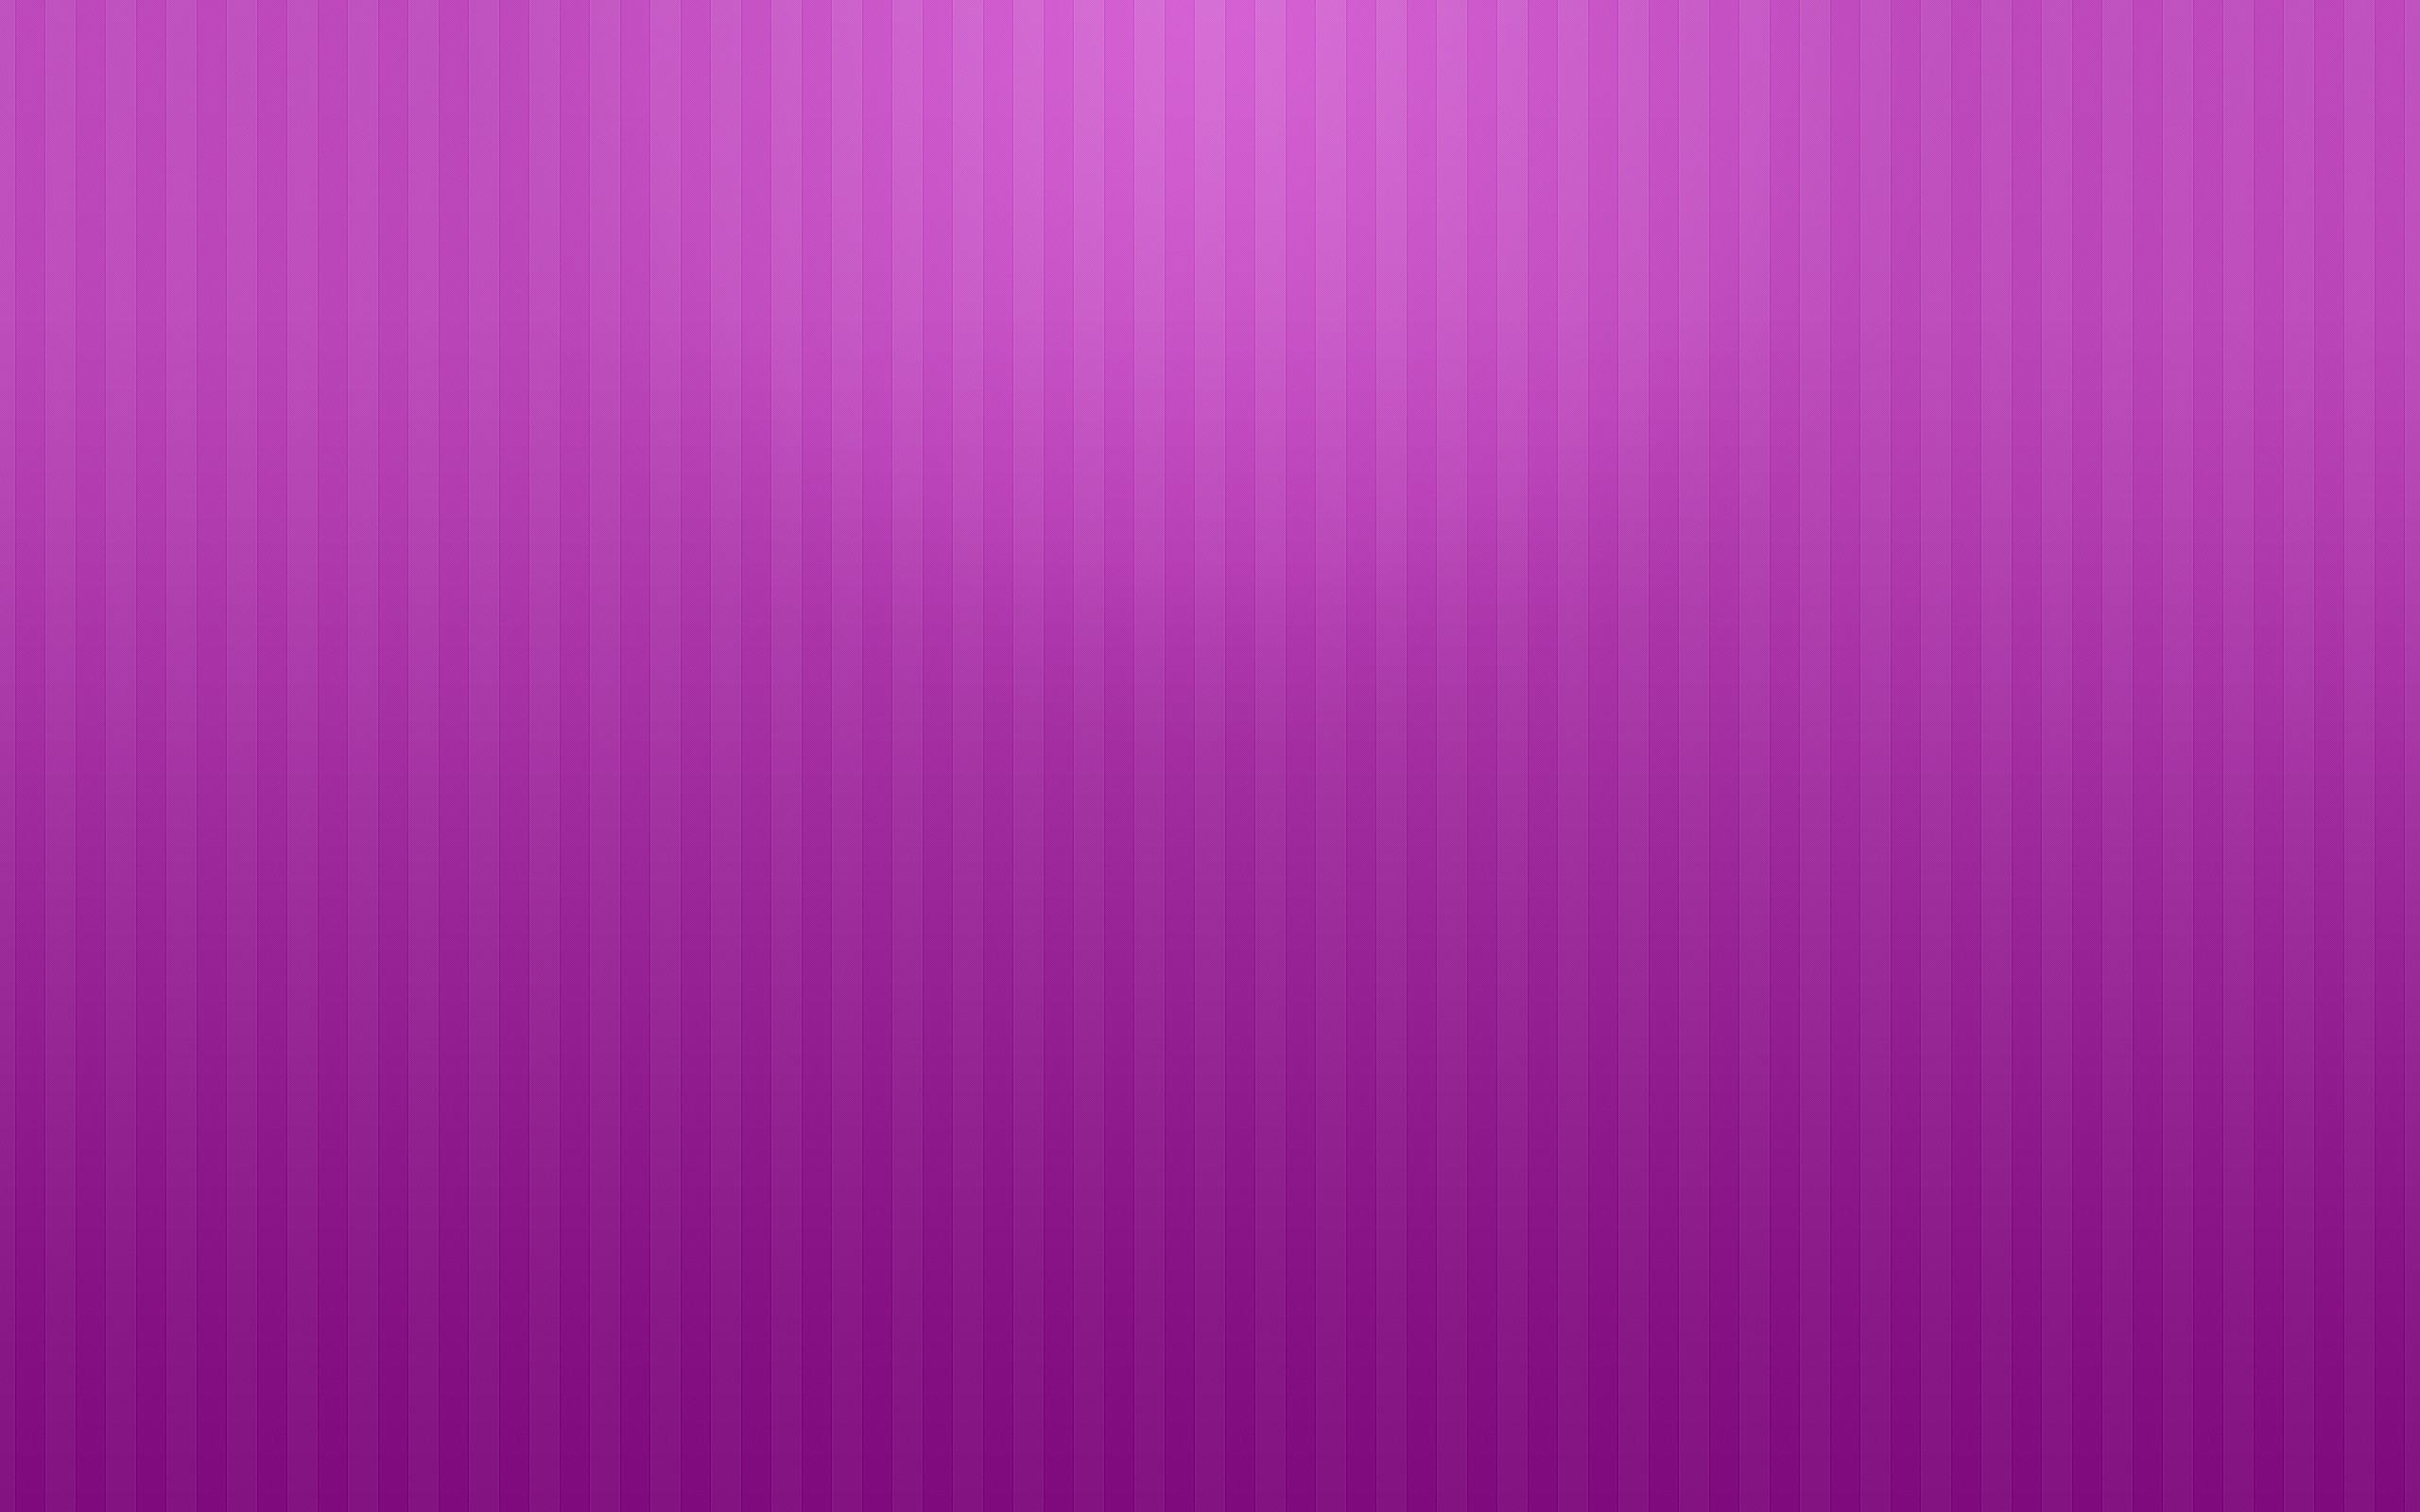 Wallpapers Backgrounds – Wallpaper Dark pink pian lining background  Category Plain Backgrounds